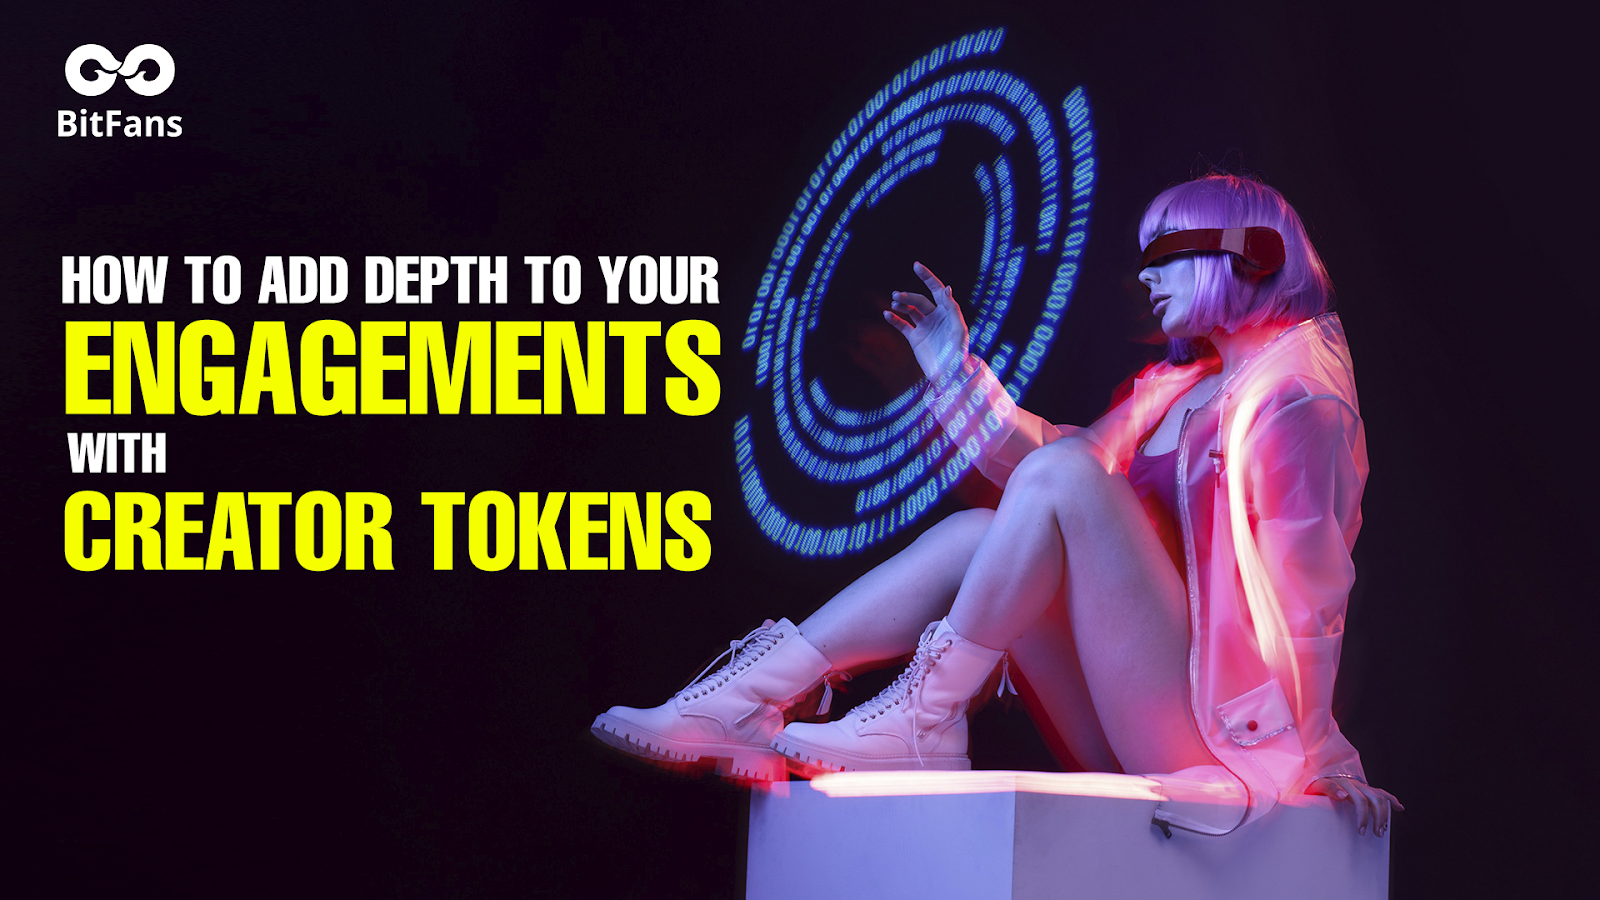 BitFans: How To Add Depth To Your Engagements With Creator Tokens